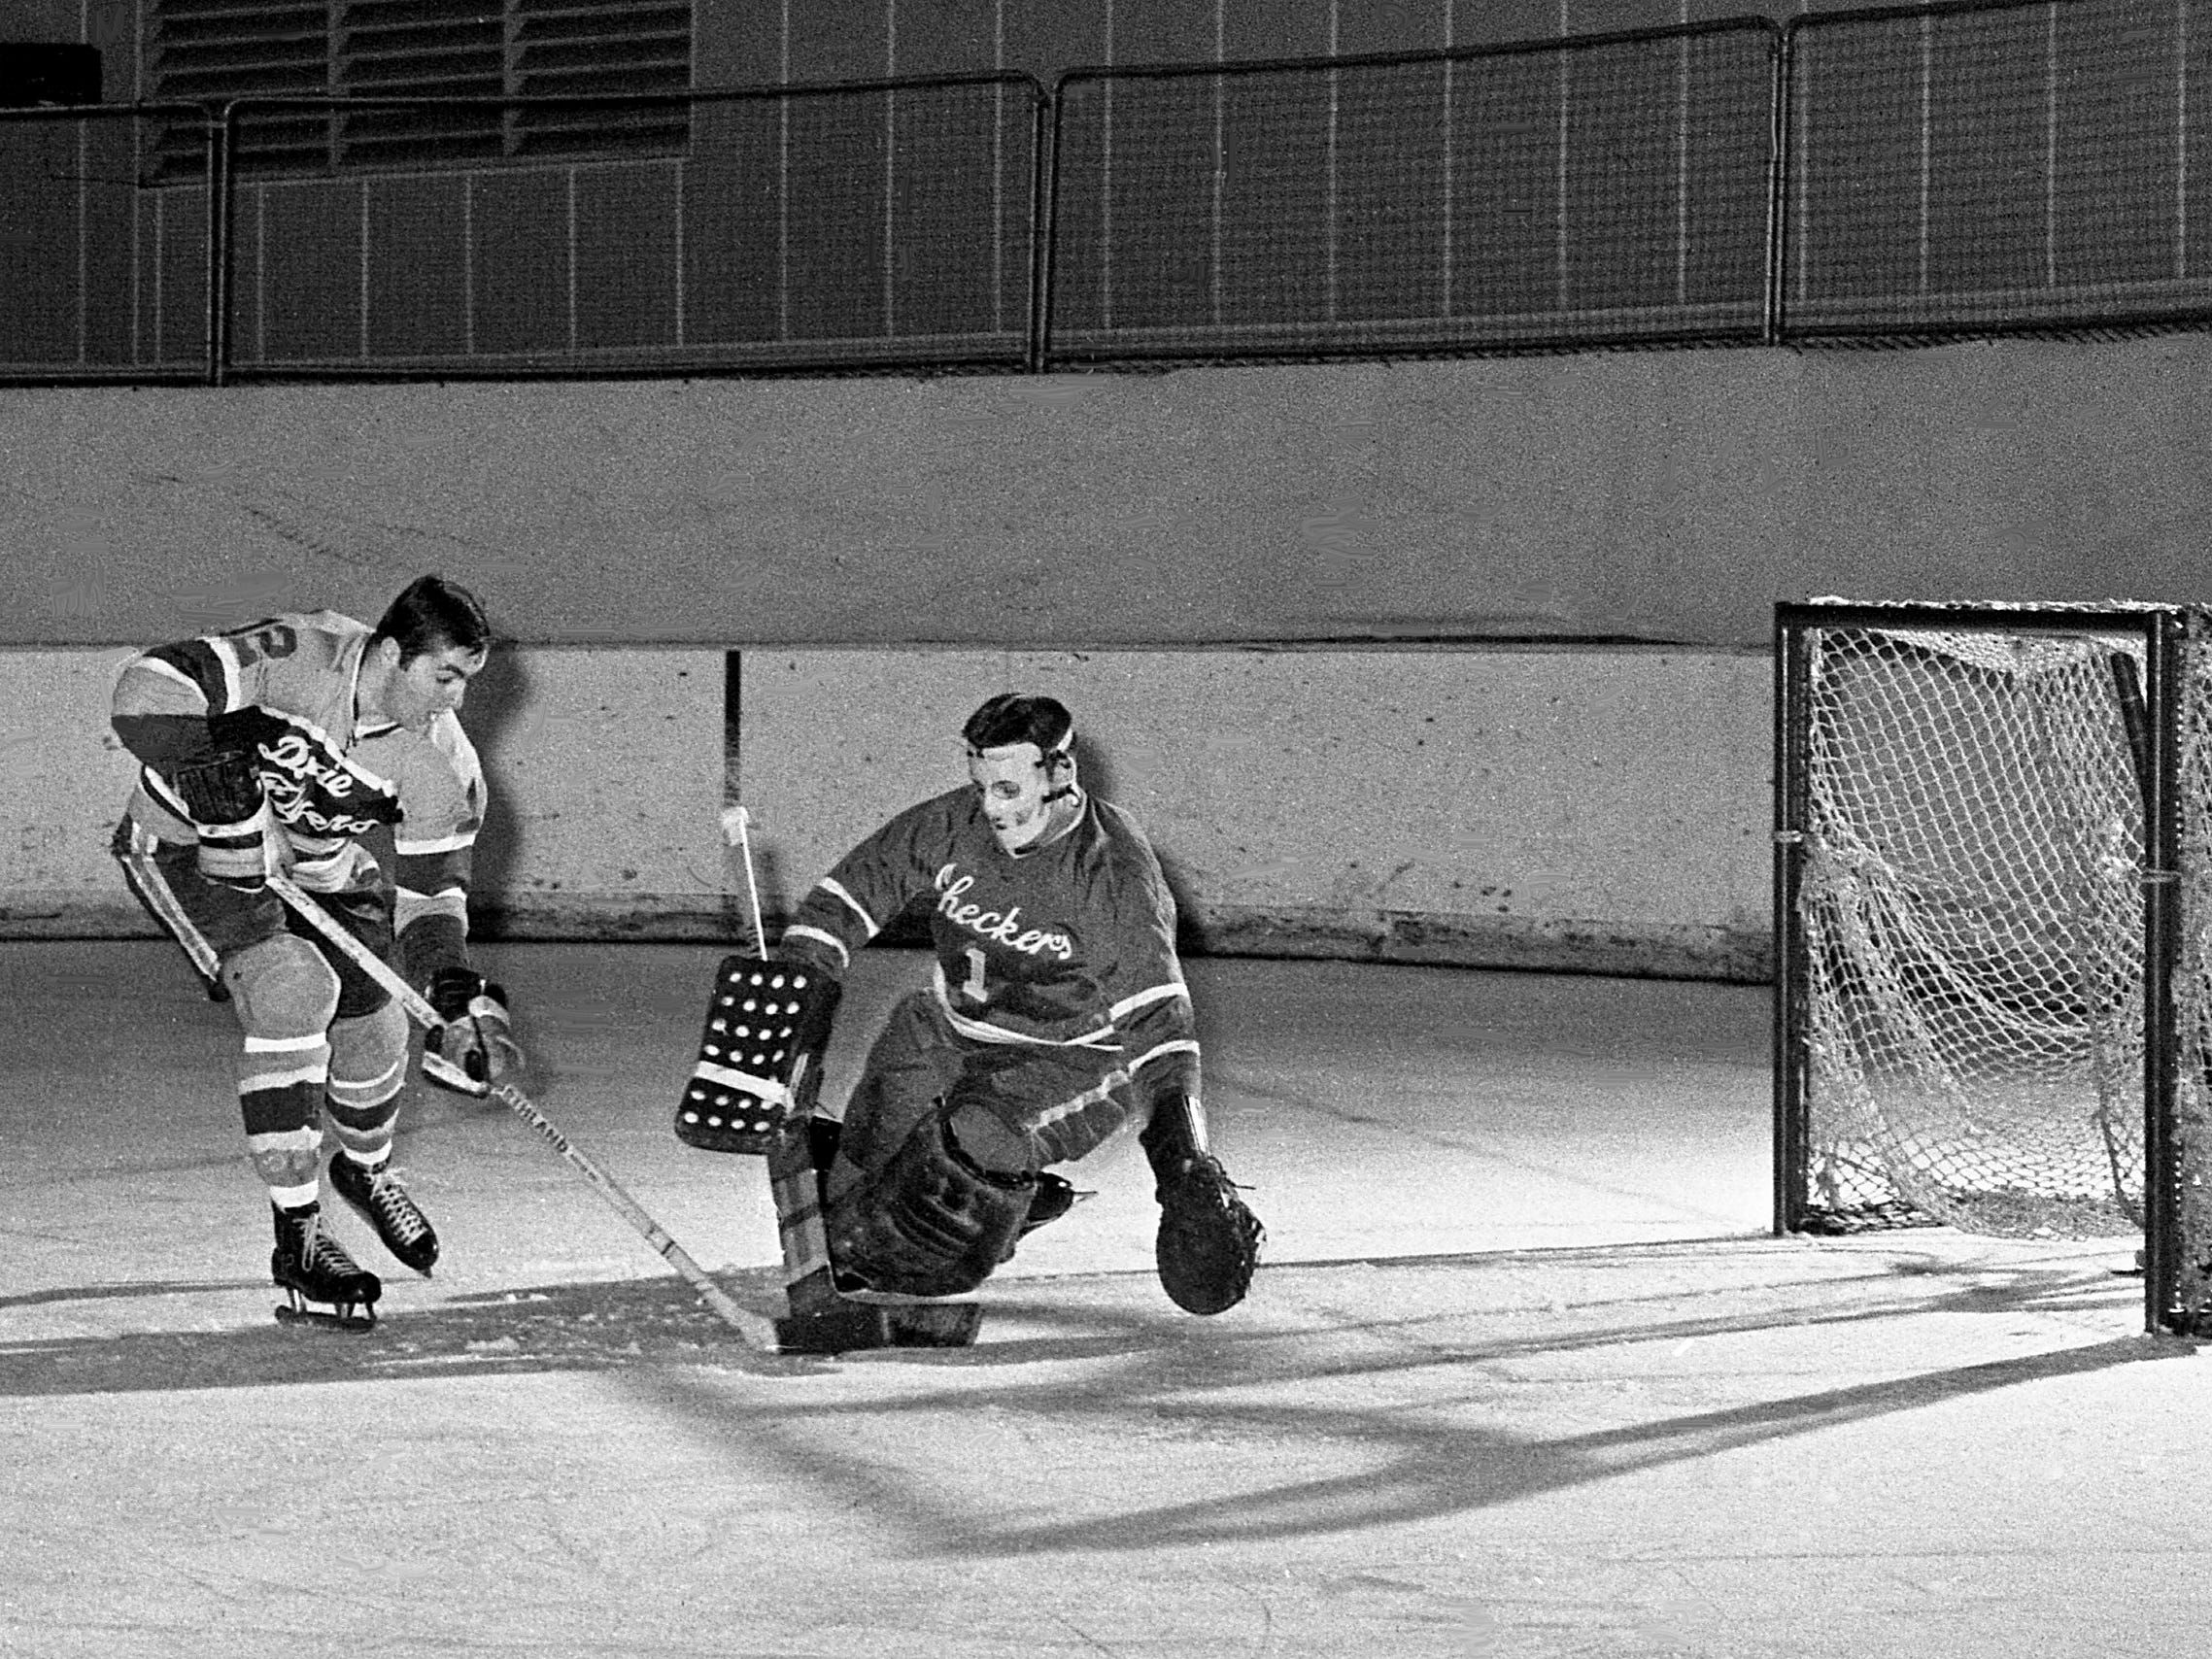 Nashville Dixie Flyers center Neil Clairmont (12) makes a move on Charlotte Checkers goalie Bob Whidden as the Flyers breezed to an 8-1 victory at Municipal Auditorium on Dec. 17, 1968.